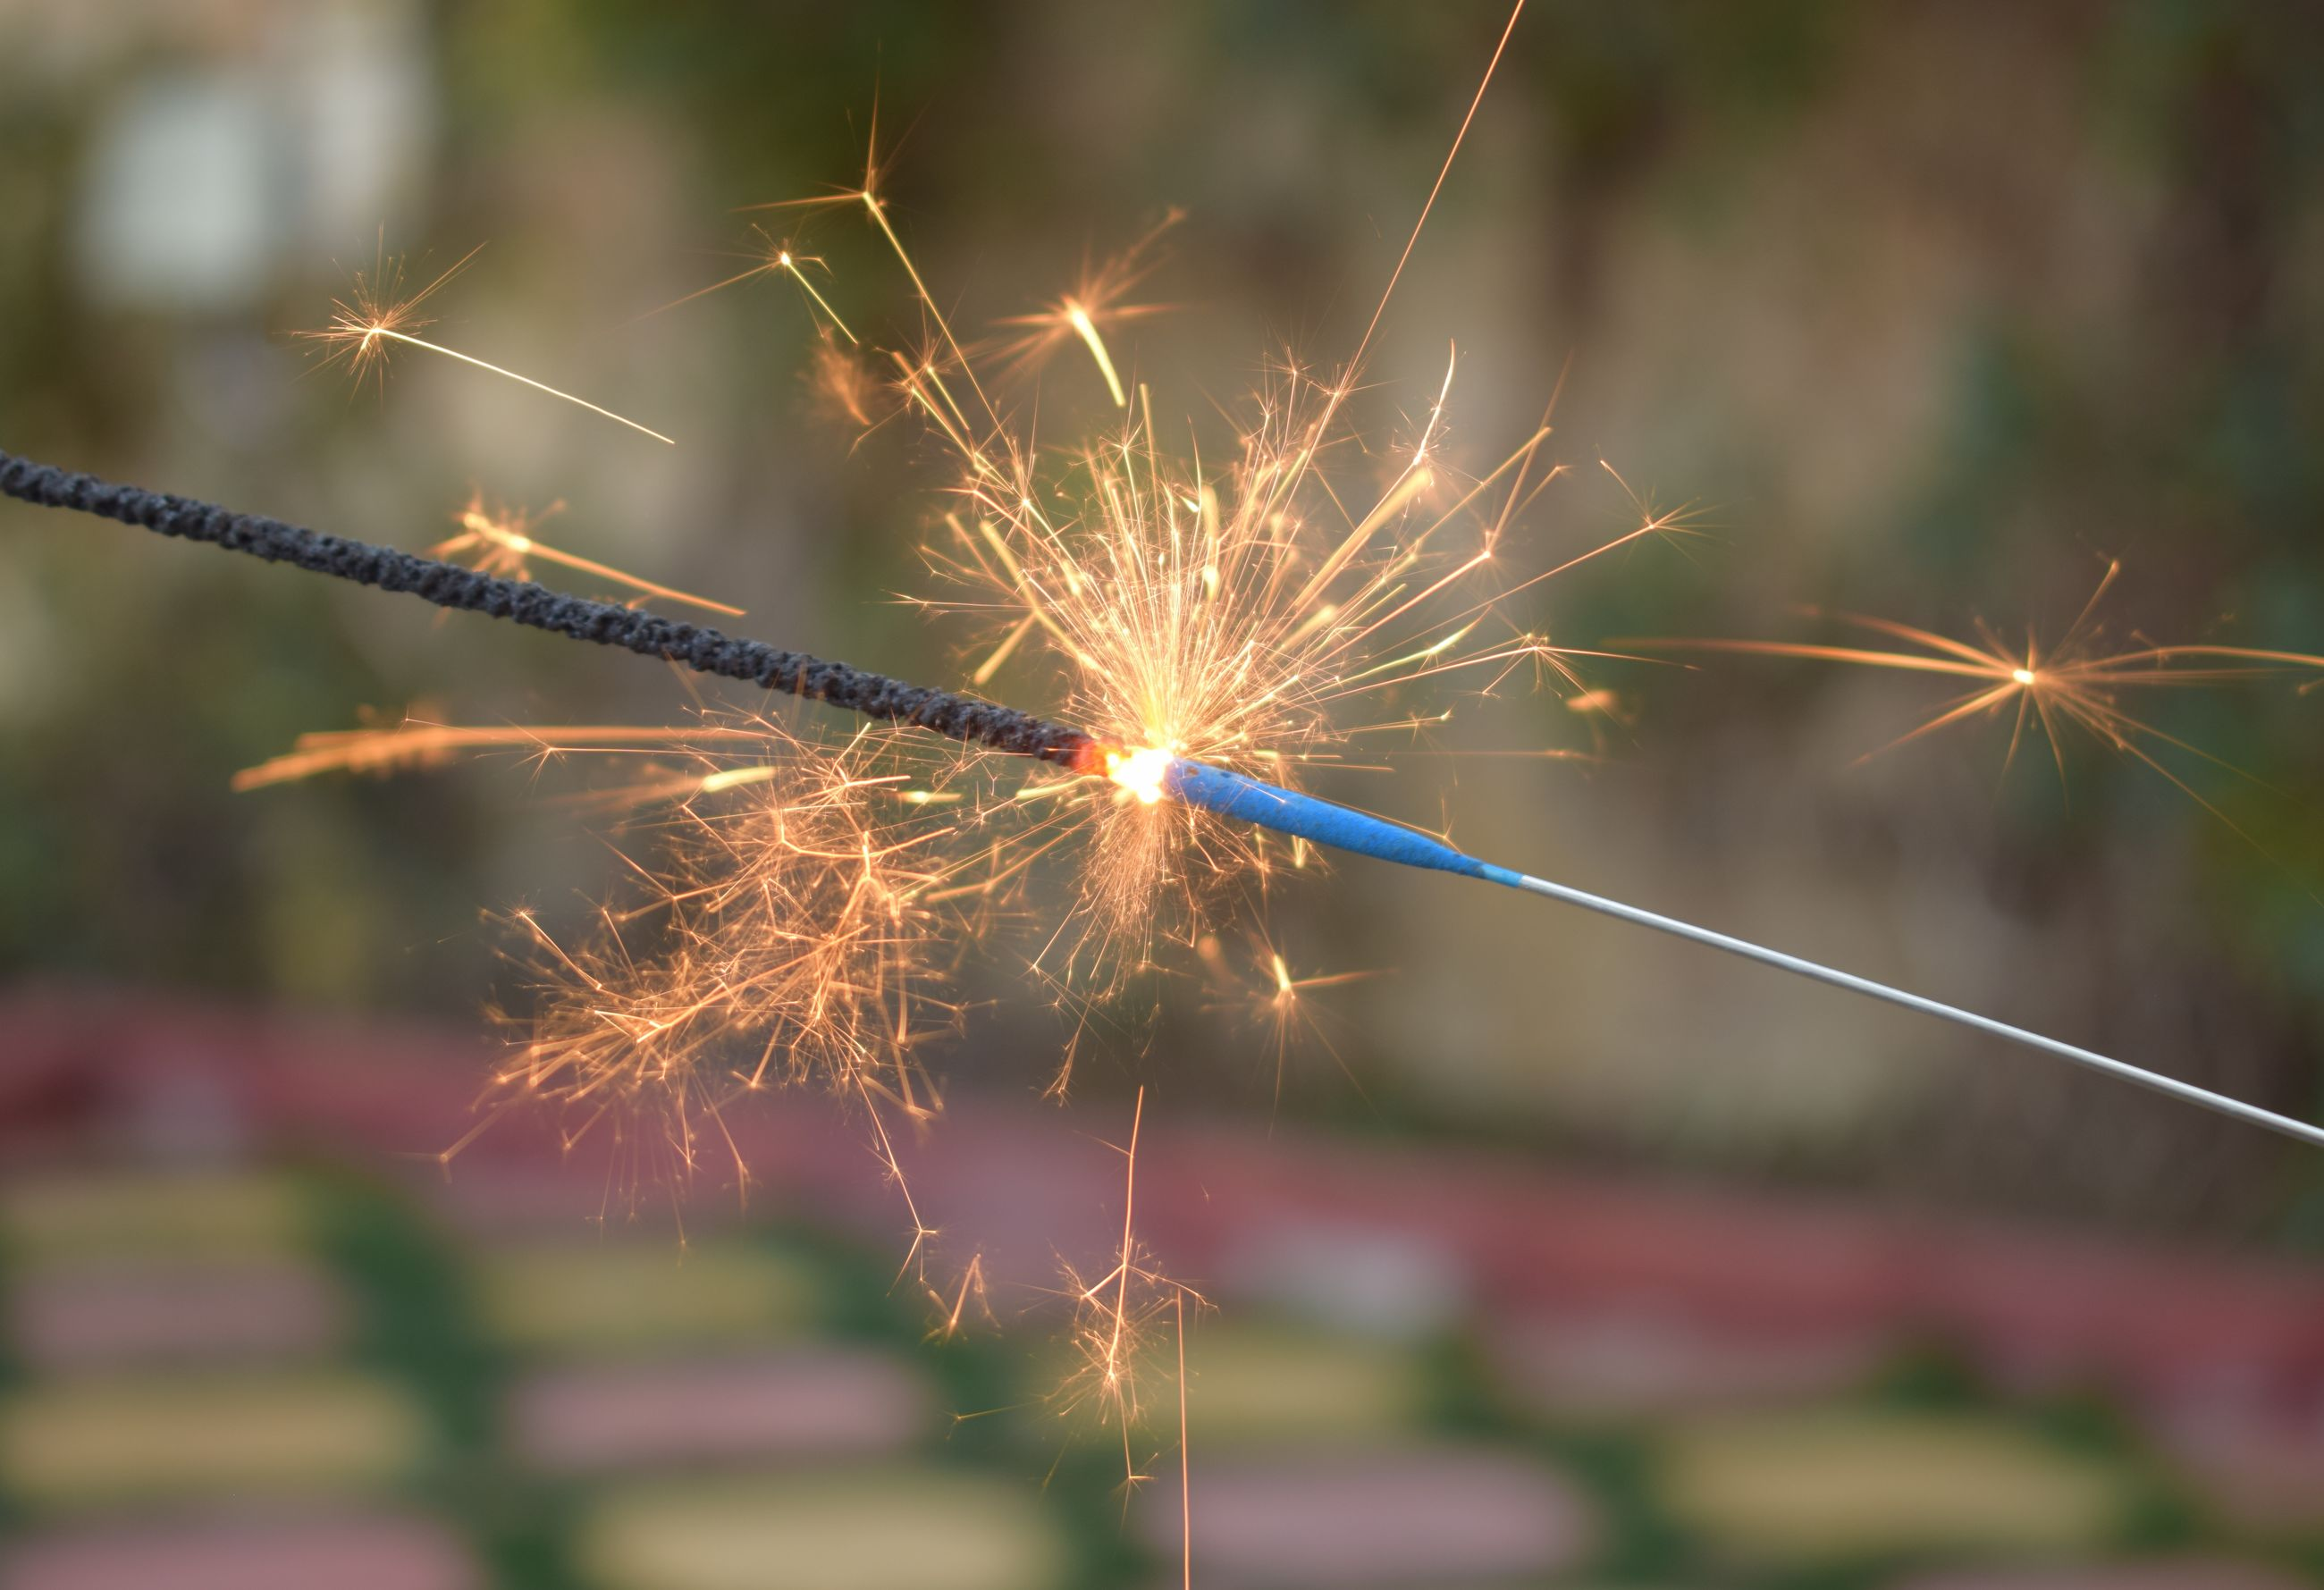 focus on foreground, celebration, illuminated, motion, blurred motion, nature, close-up, firework, arts culture and entertainment, event, long exposure, glowing, no people, outdoors, sparkler, sparks, day, selective focus, holding, plant, firework - man made object